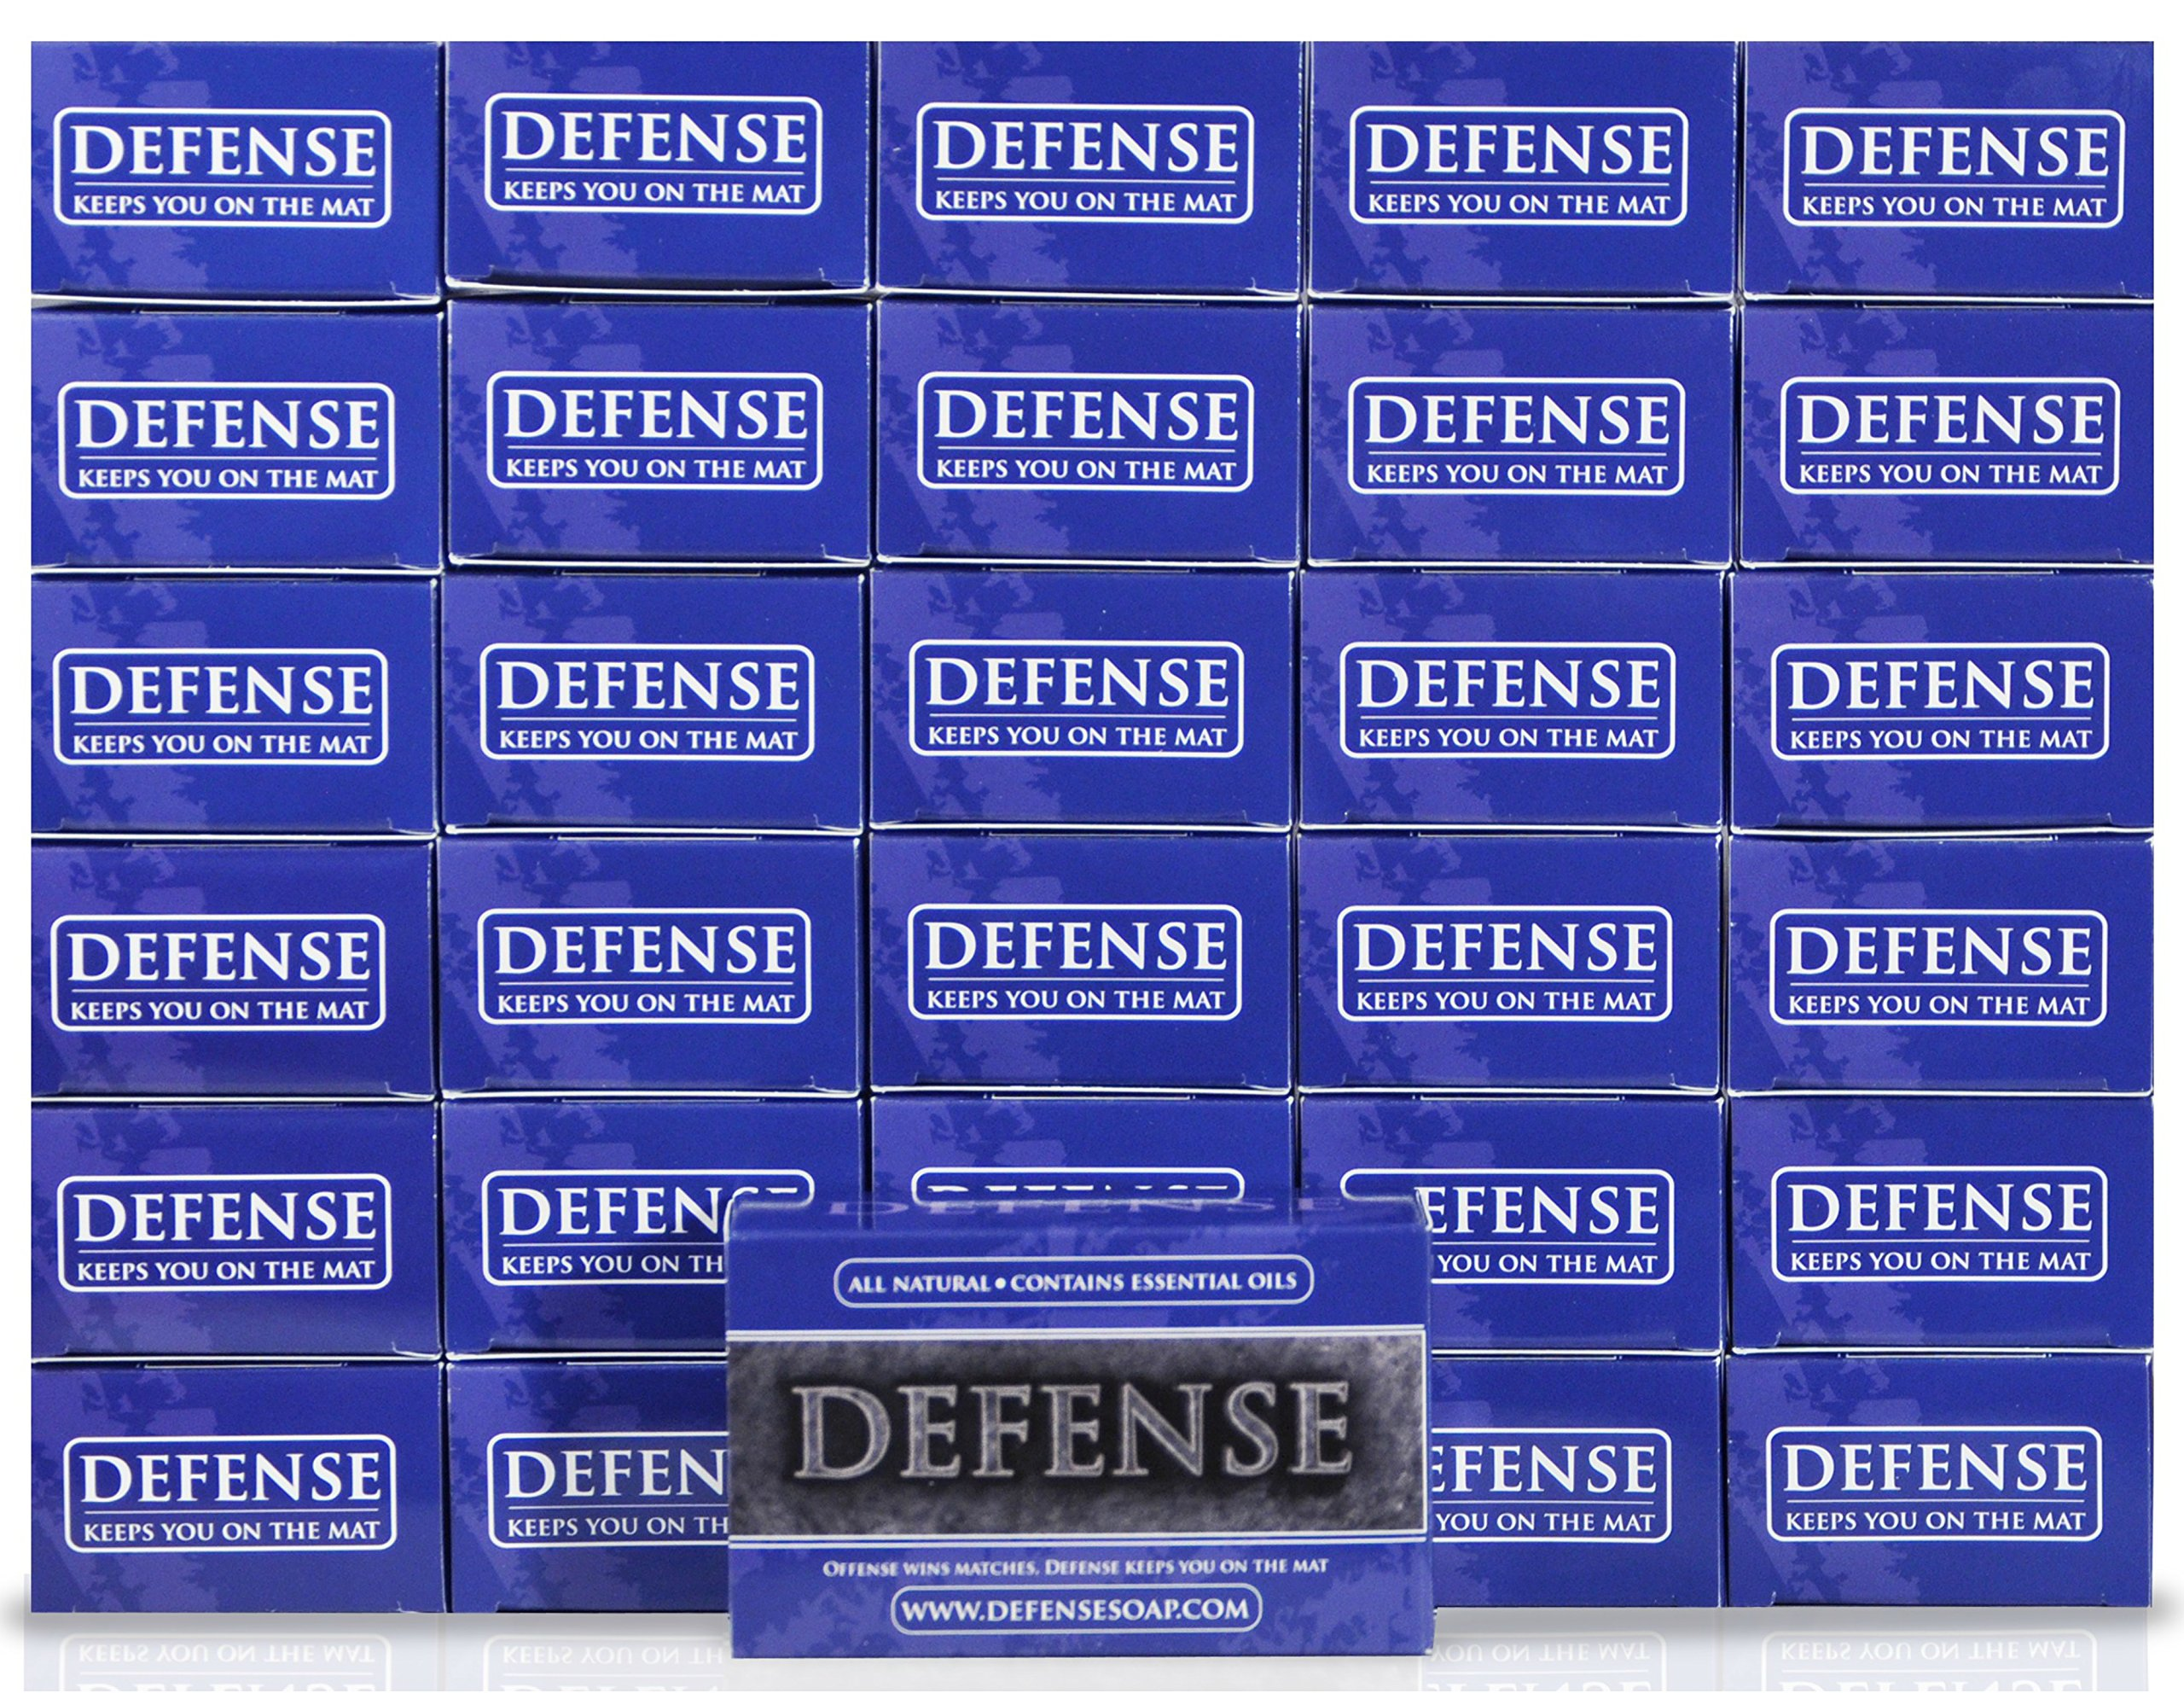 Defense Soap 4 Ounce Bar (Pack of 30) - 100% Natural and Herbal Pharmaceutical Grade Tea Tree Oil and Eucalyptus Oil Helps Wash Away Ringworm, Jock Itch, Dry Skin, Dandruff, Acne, Psoriasis, Yeast, and Athlete's Foot